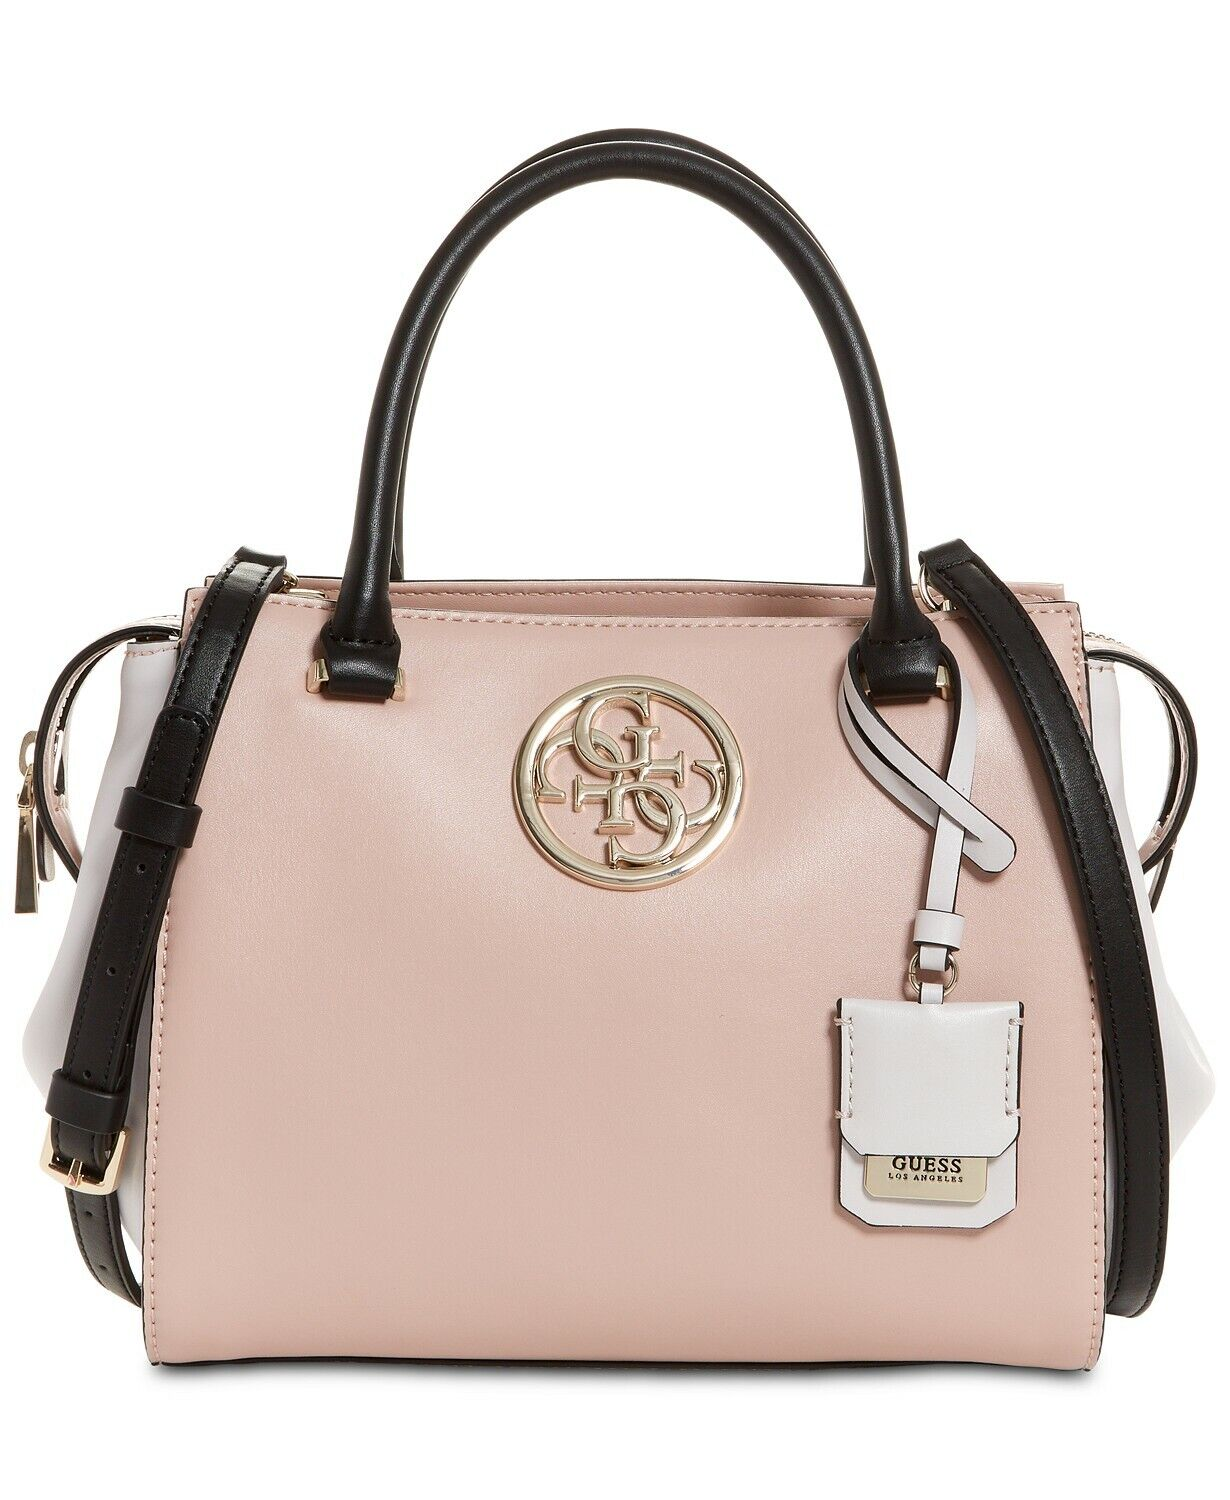 Guess Women's Ryann Lux Nude Multi Satchel Handbag